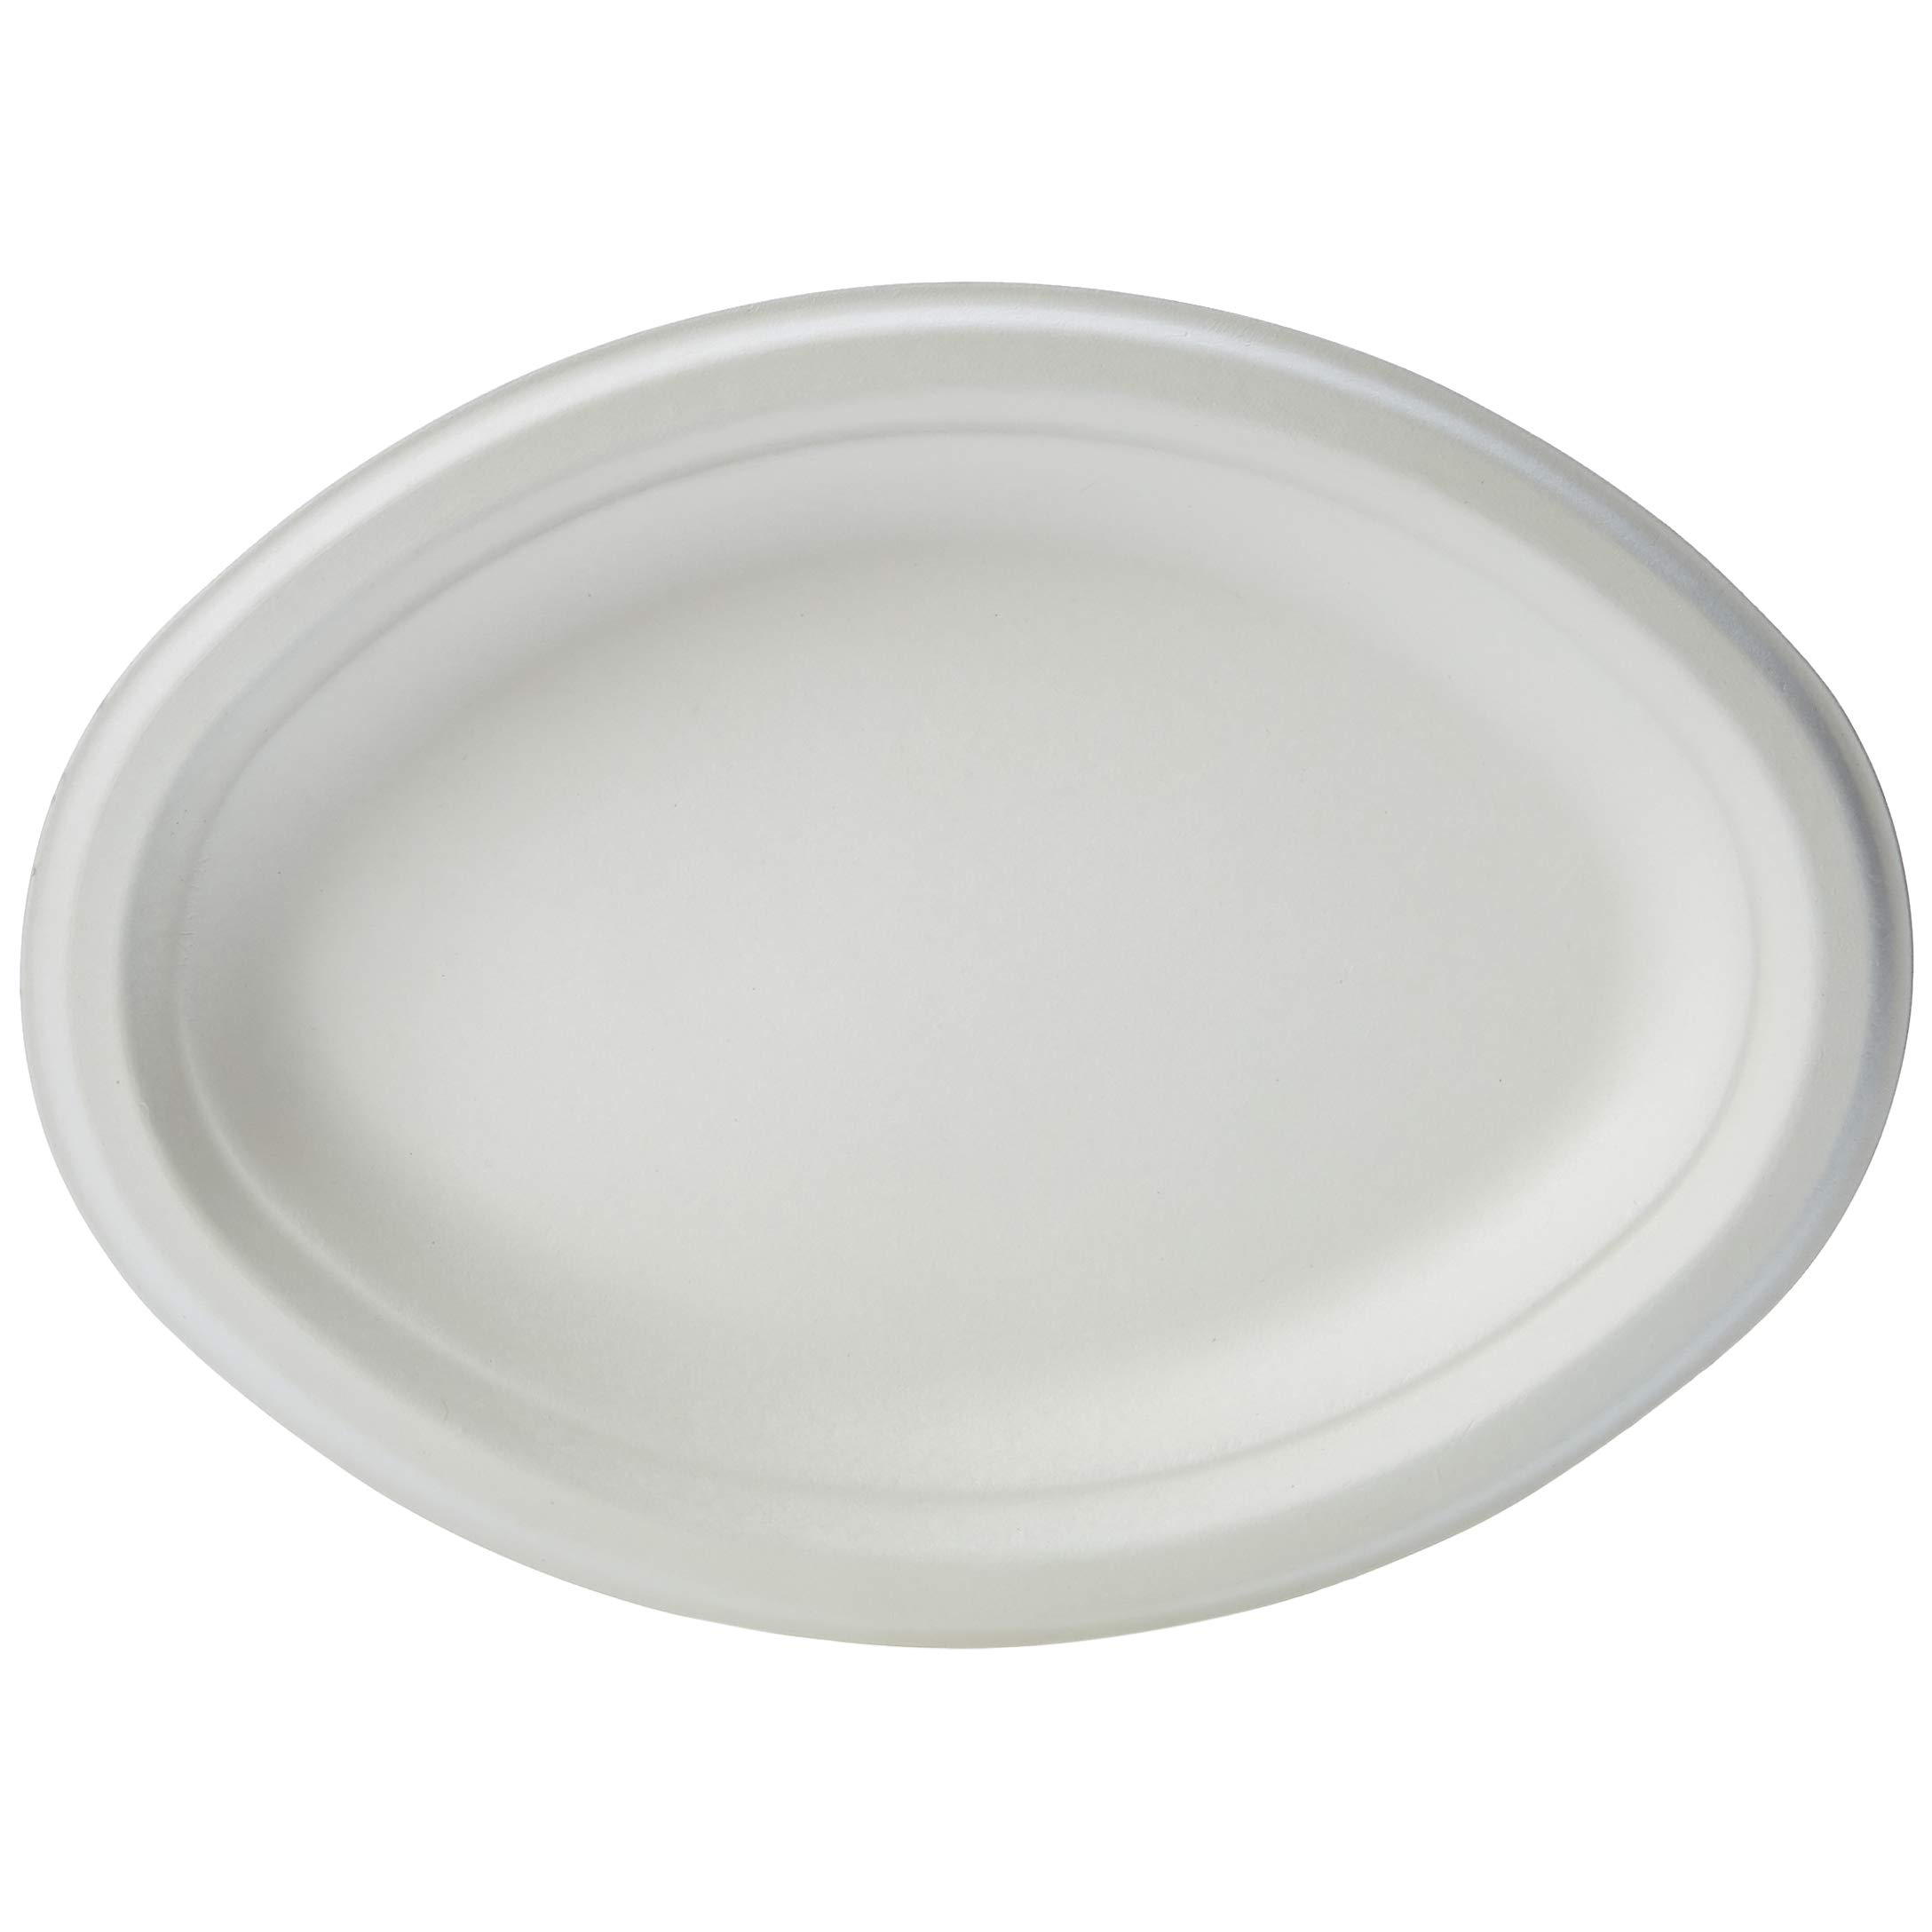 AmazonBasics Compostable Plate, 10 x 7.5 Inches, 500-Count